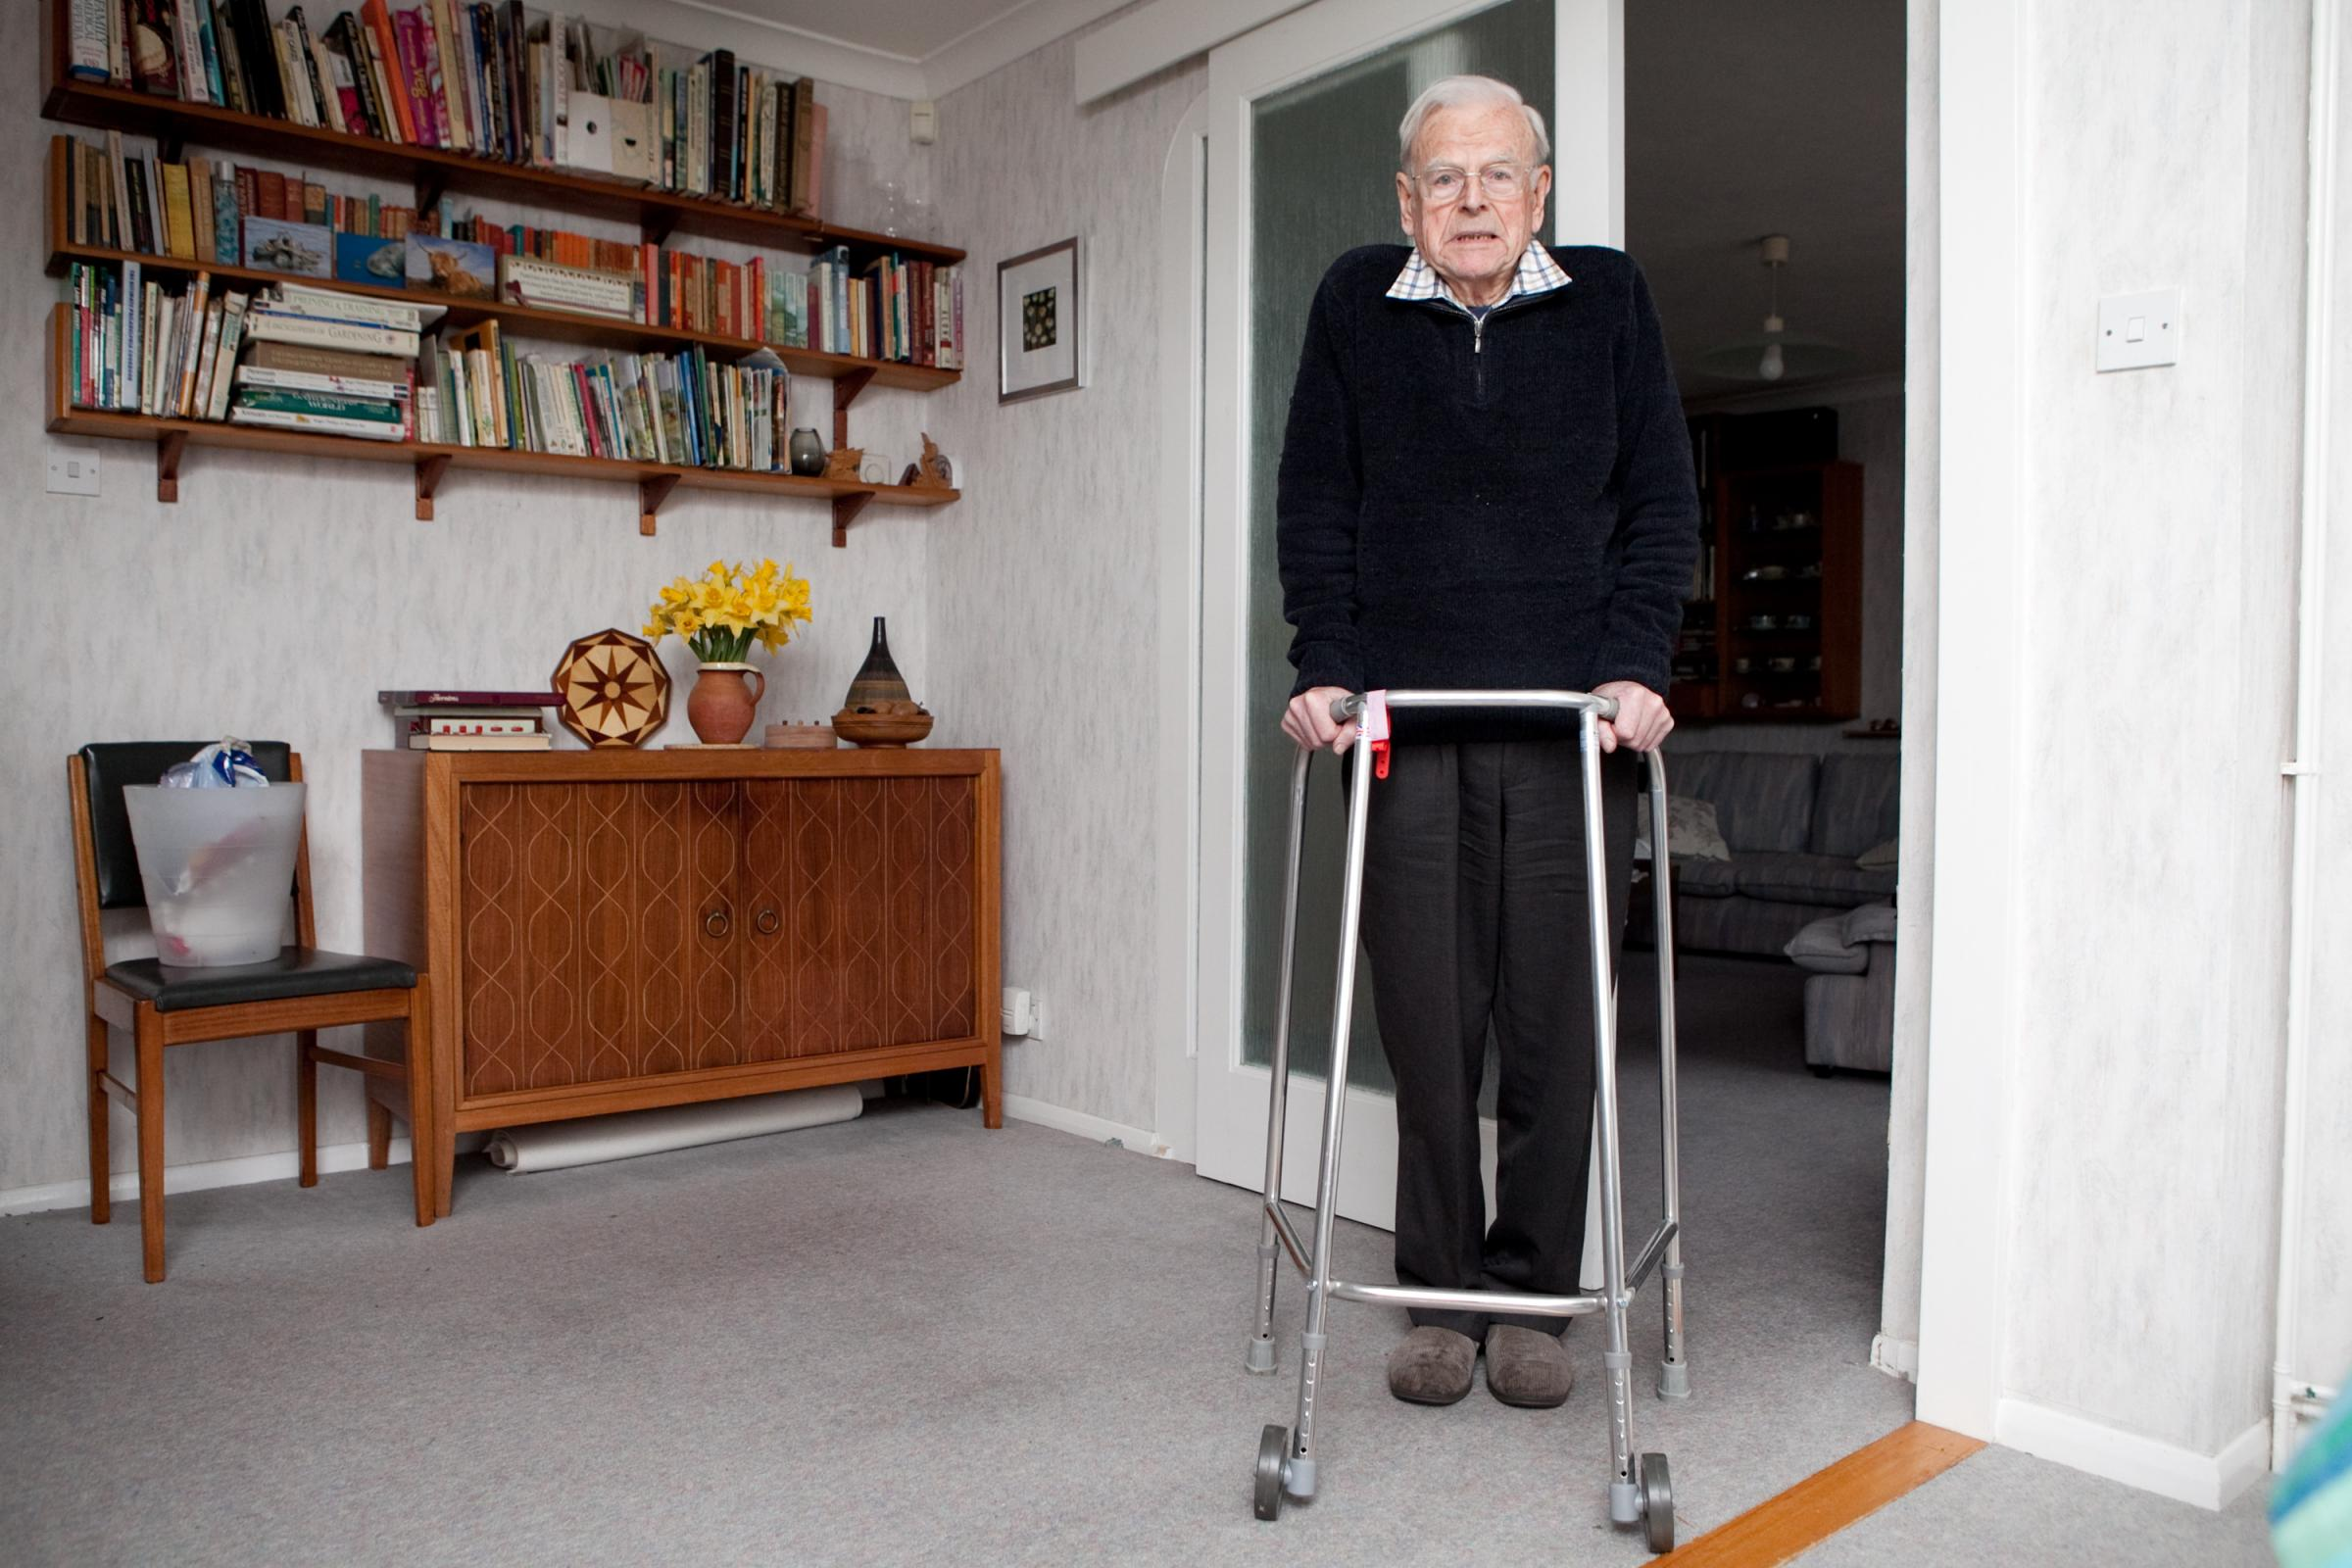 Elderly Bromley man told to 'dump' Zimmer frame by hospital after offering to return